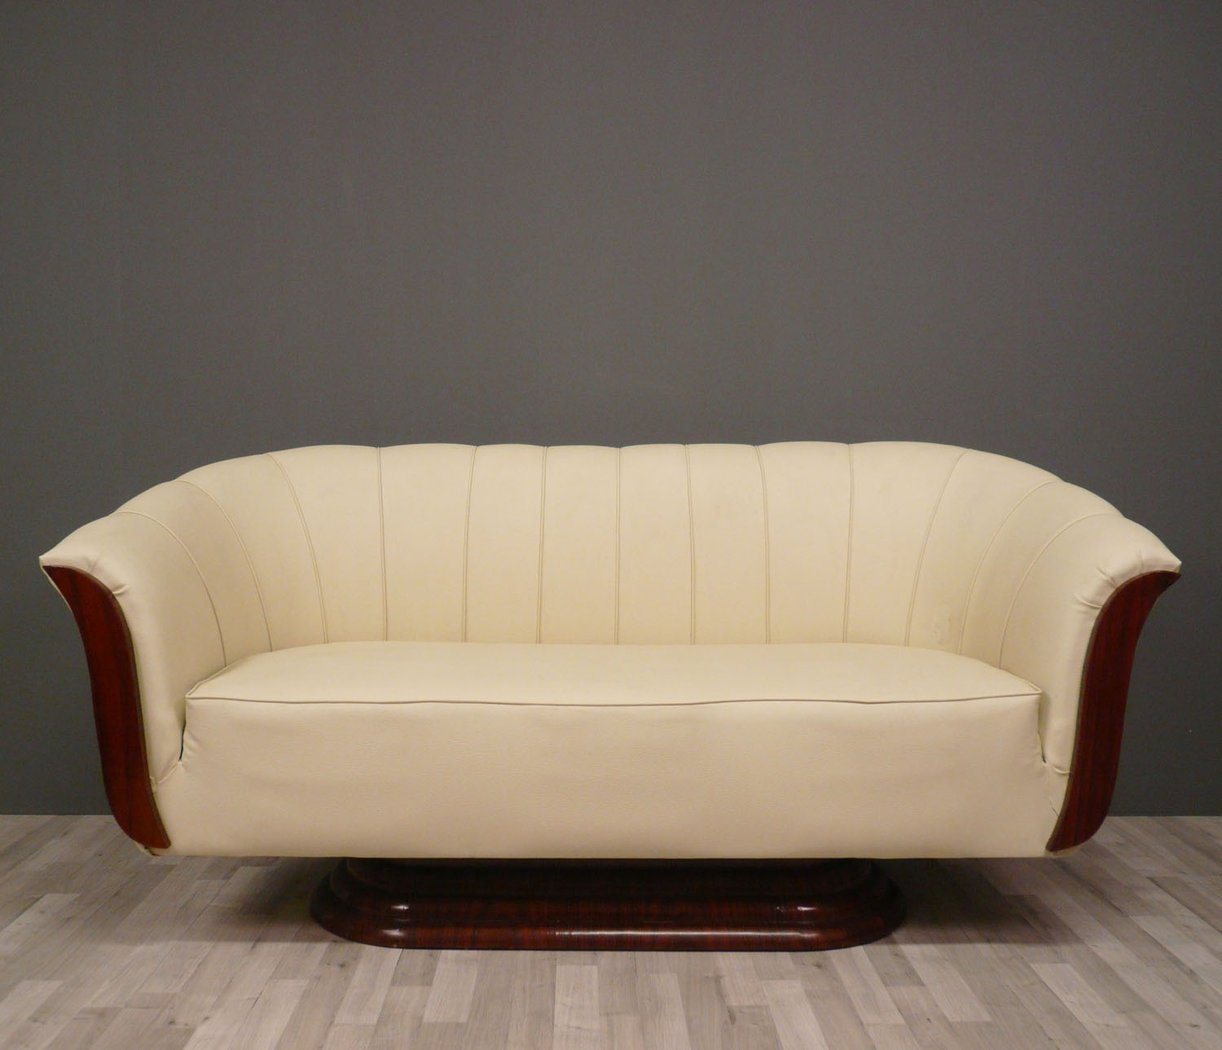 art deco sofa art deco furniture